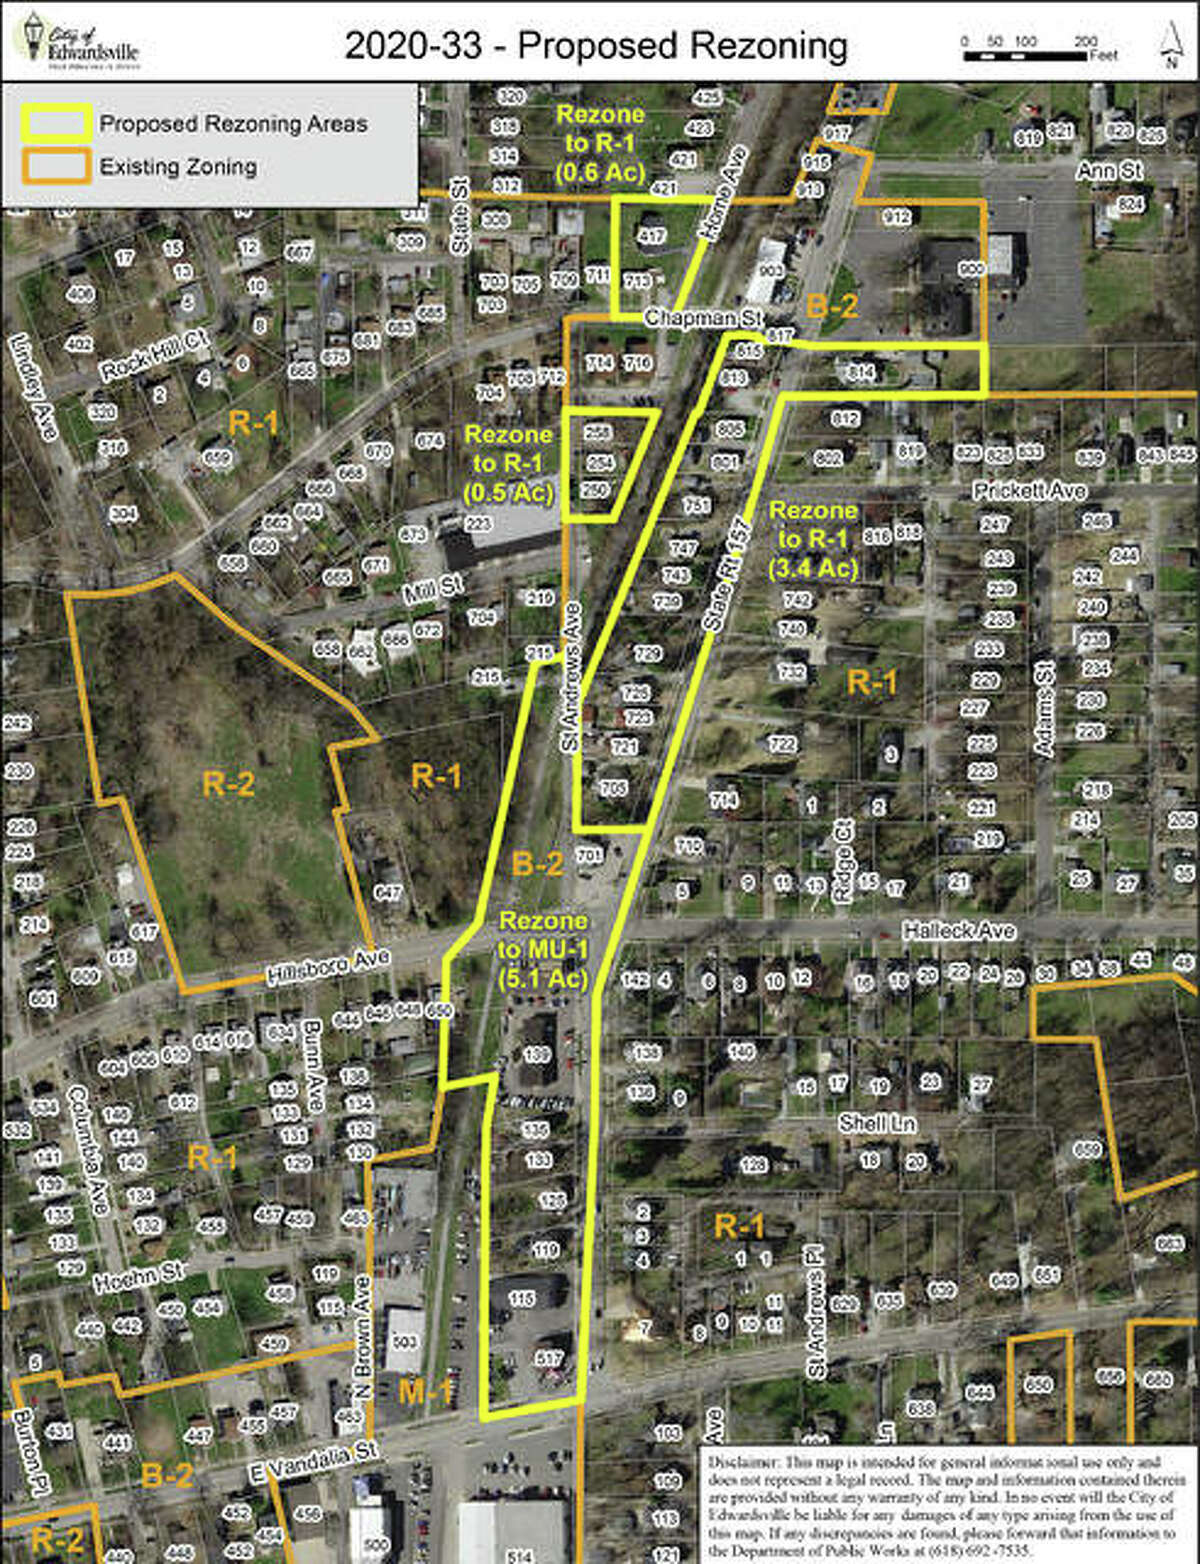 Another area is on the northeast side of town, from where Route 157 heads north from East Vandalia Street up to Chapman Street. There are 29 properties involved in this rezoning.